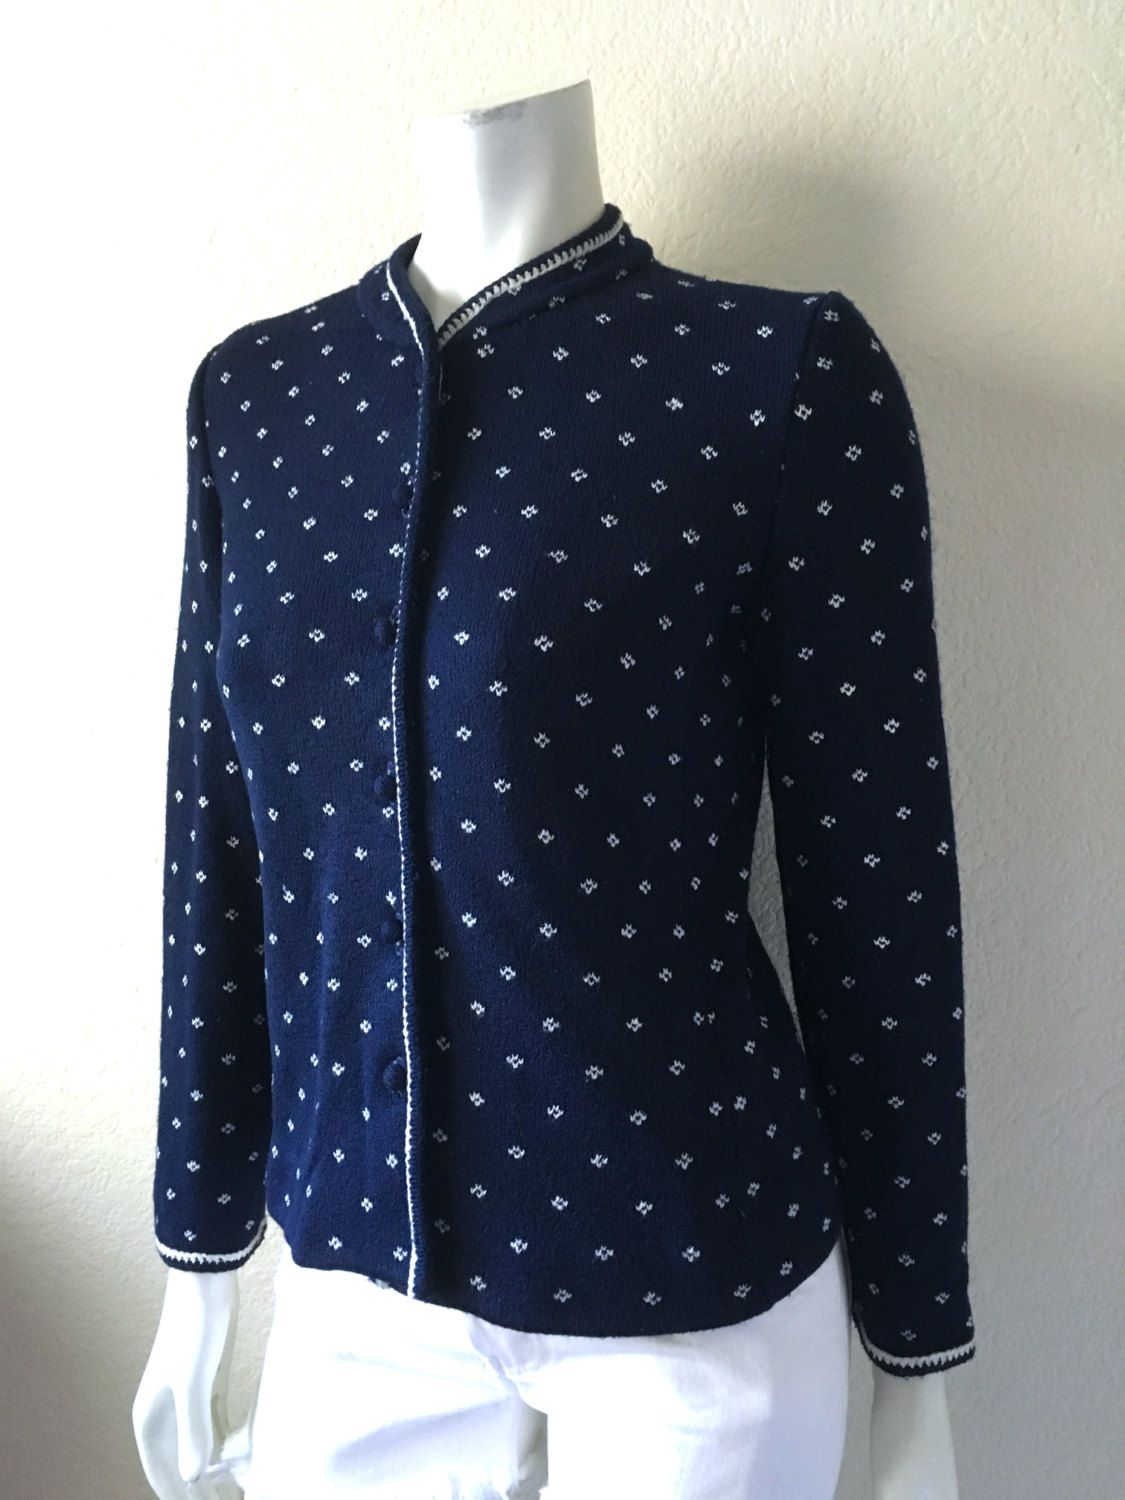 Vintage Women's 80's Navy Blue Cardigan Sweater, Button Up (S) by Freshandswanky on Etsy